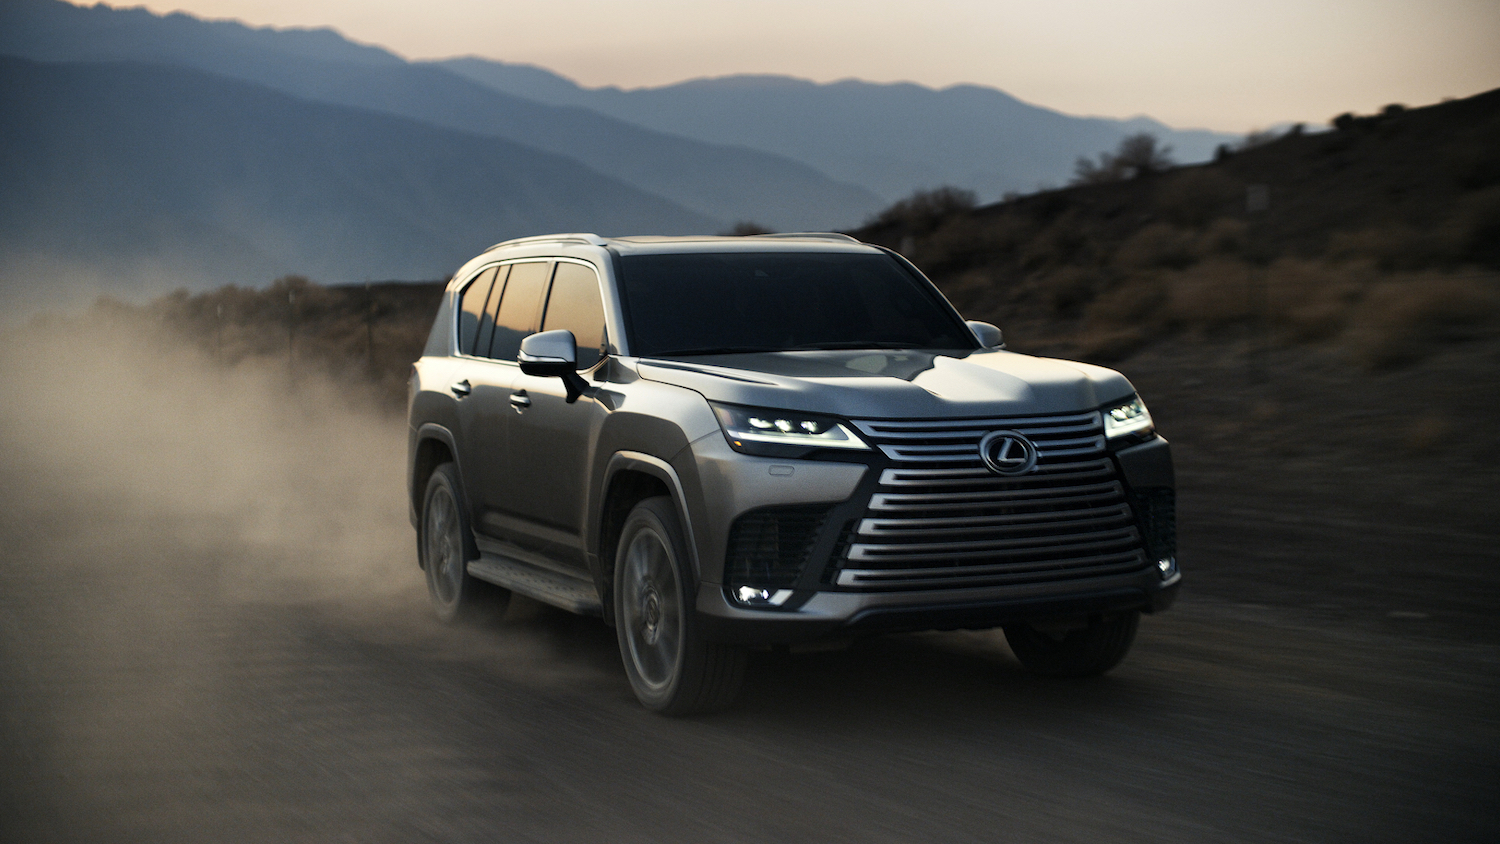 2022 Lexus LX 600 Interior. The new Lexus LX-series improves on the outgoing SUV's power, efficiency, and off-road abilities--thanks to a Toyota Tundra drivetrain. | Lexus